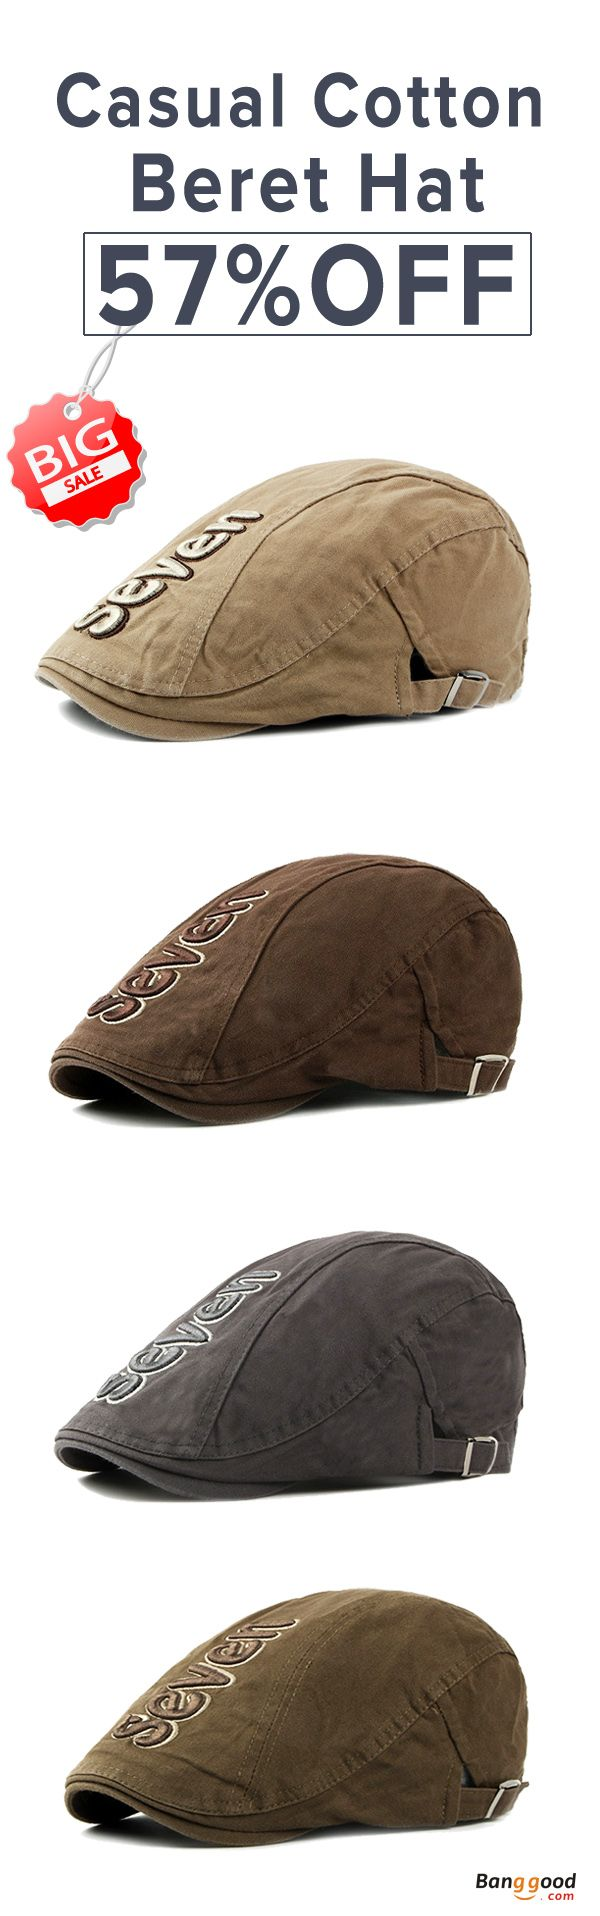 US$8.99+Free shipping. 57%OFF! Men's Beret Hat, Sunscreen Hats, Cotton, Casual Outdoor, Adjustable, Fashion. Color: Black, Khaki, Grey, Coffee, Army Green. Shop now~